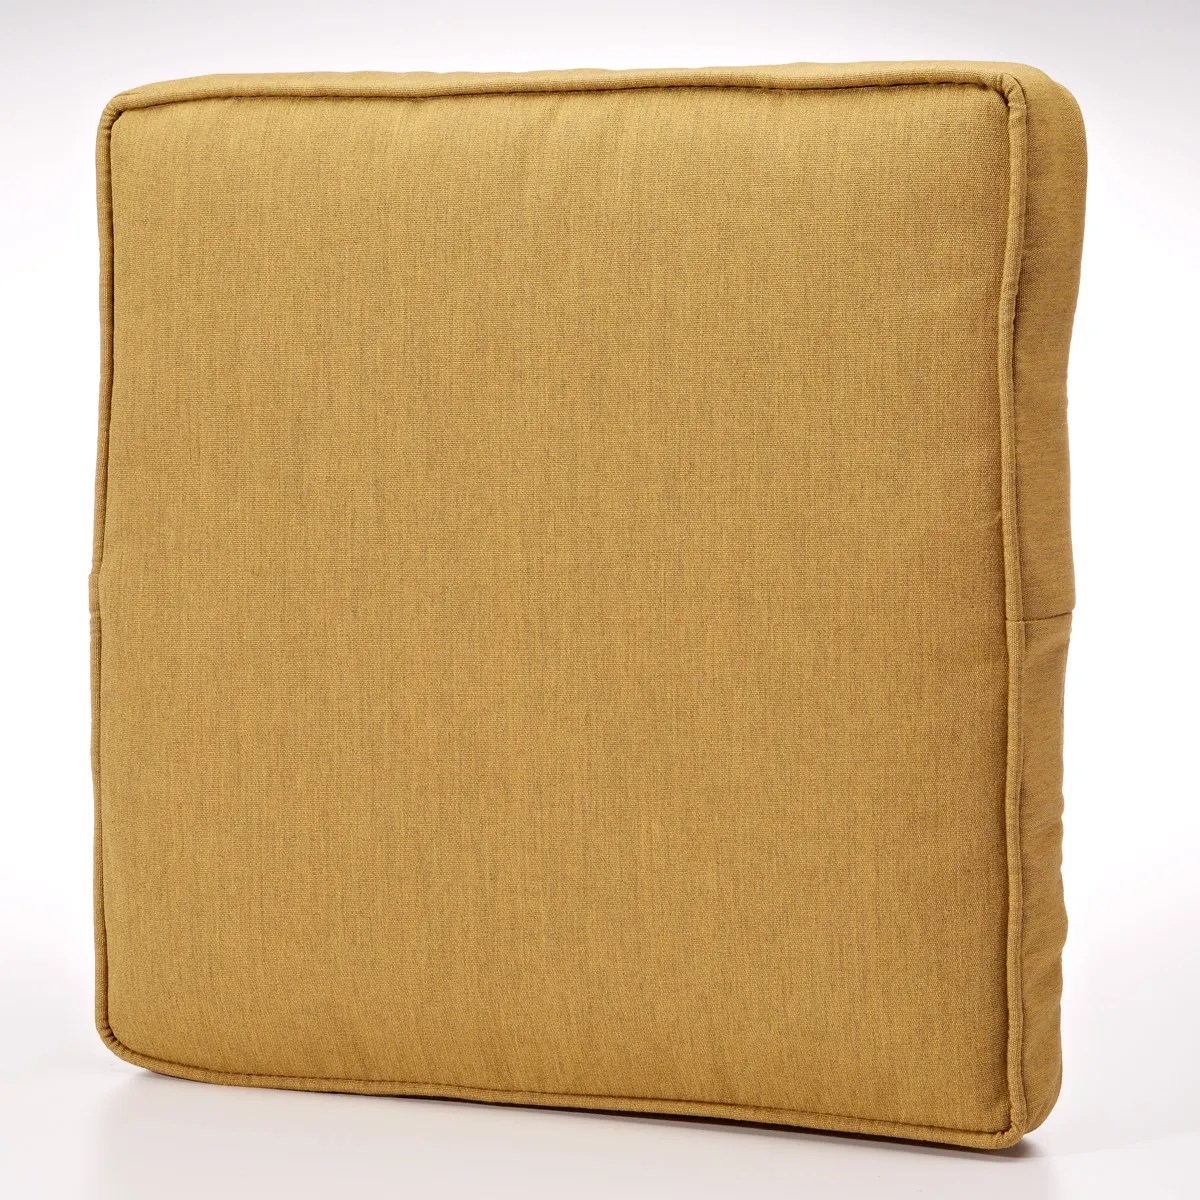 boxed chair cushions round folding chairs storage box cushion from sportys preferred living